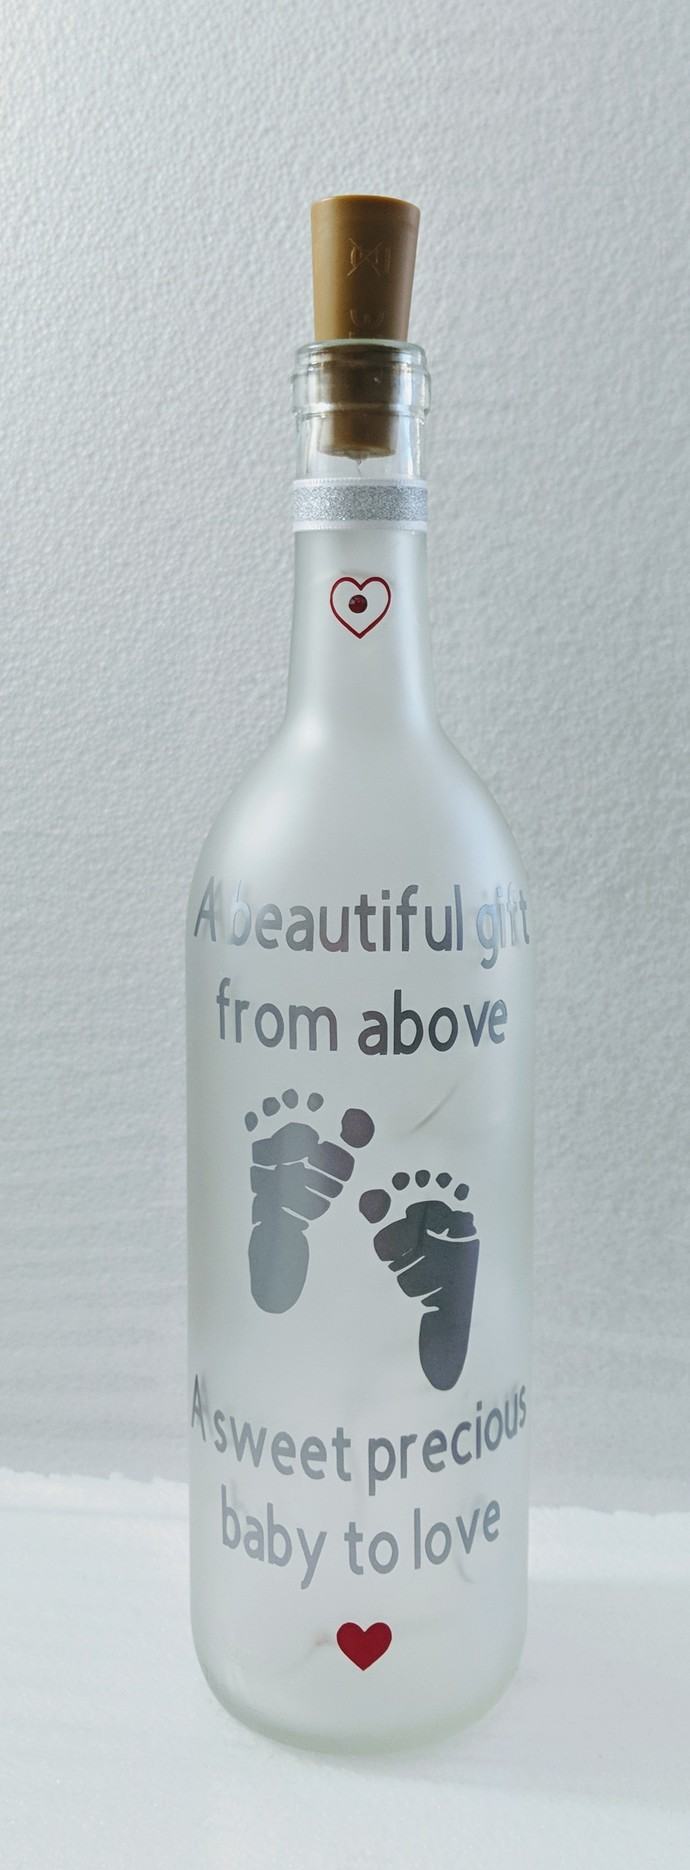 Gender reveal Light bottle.